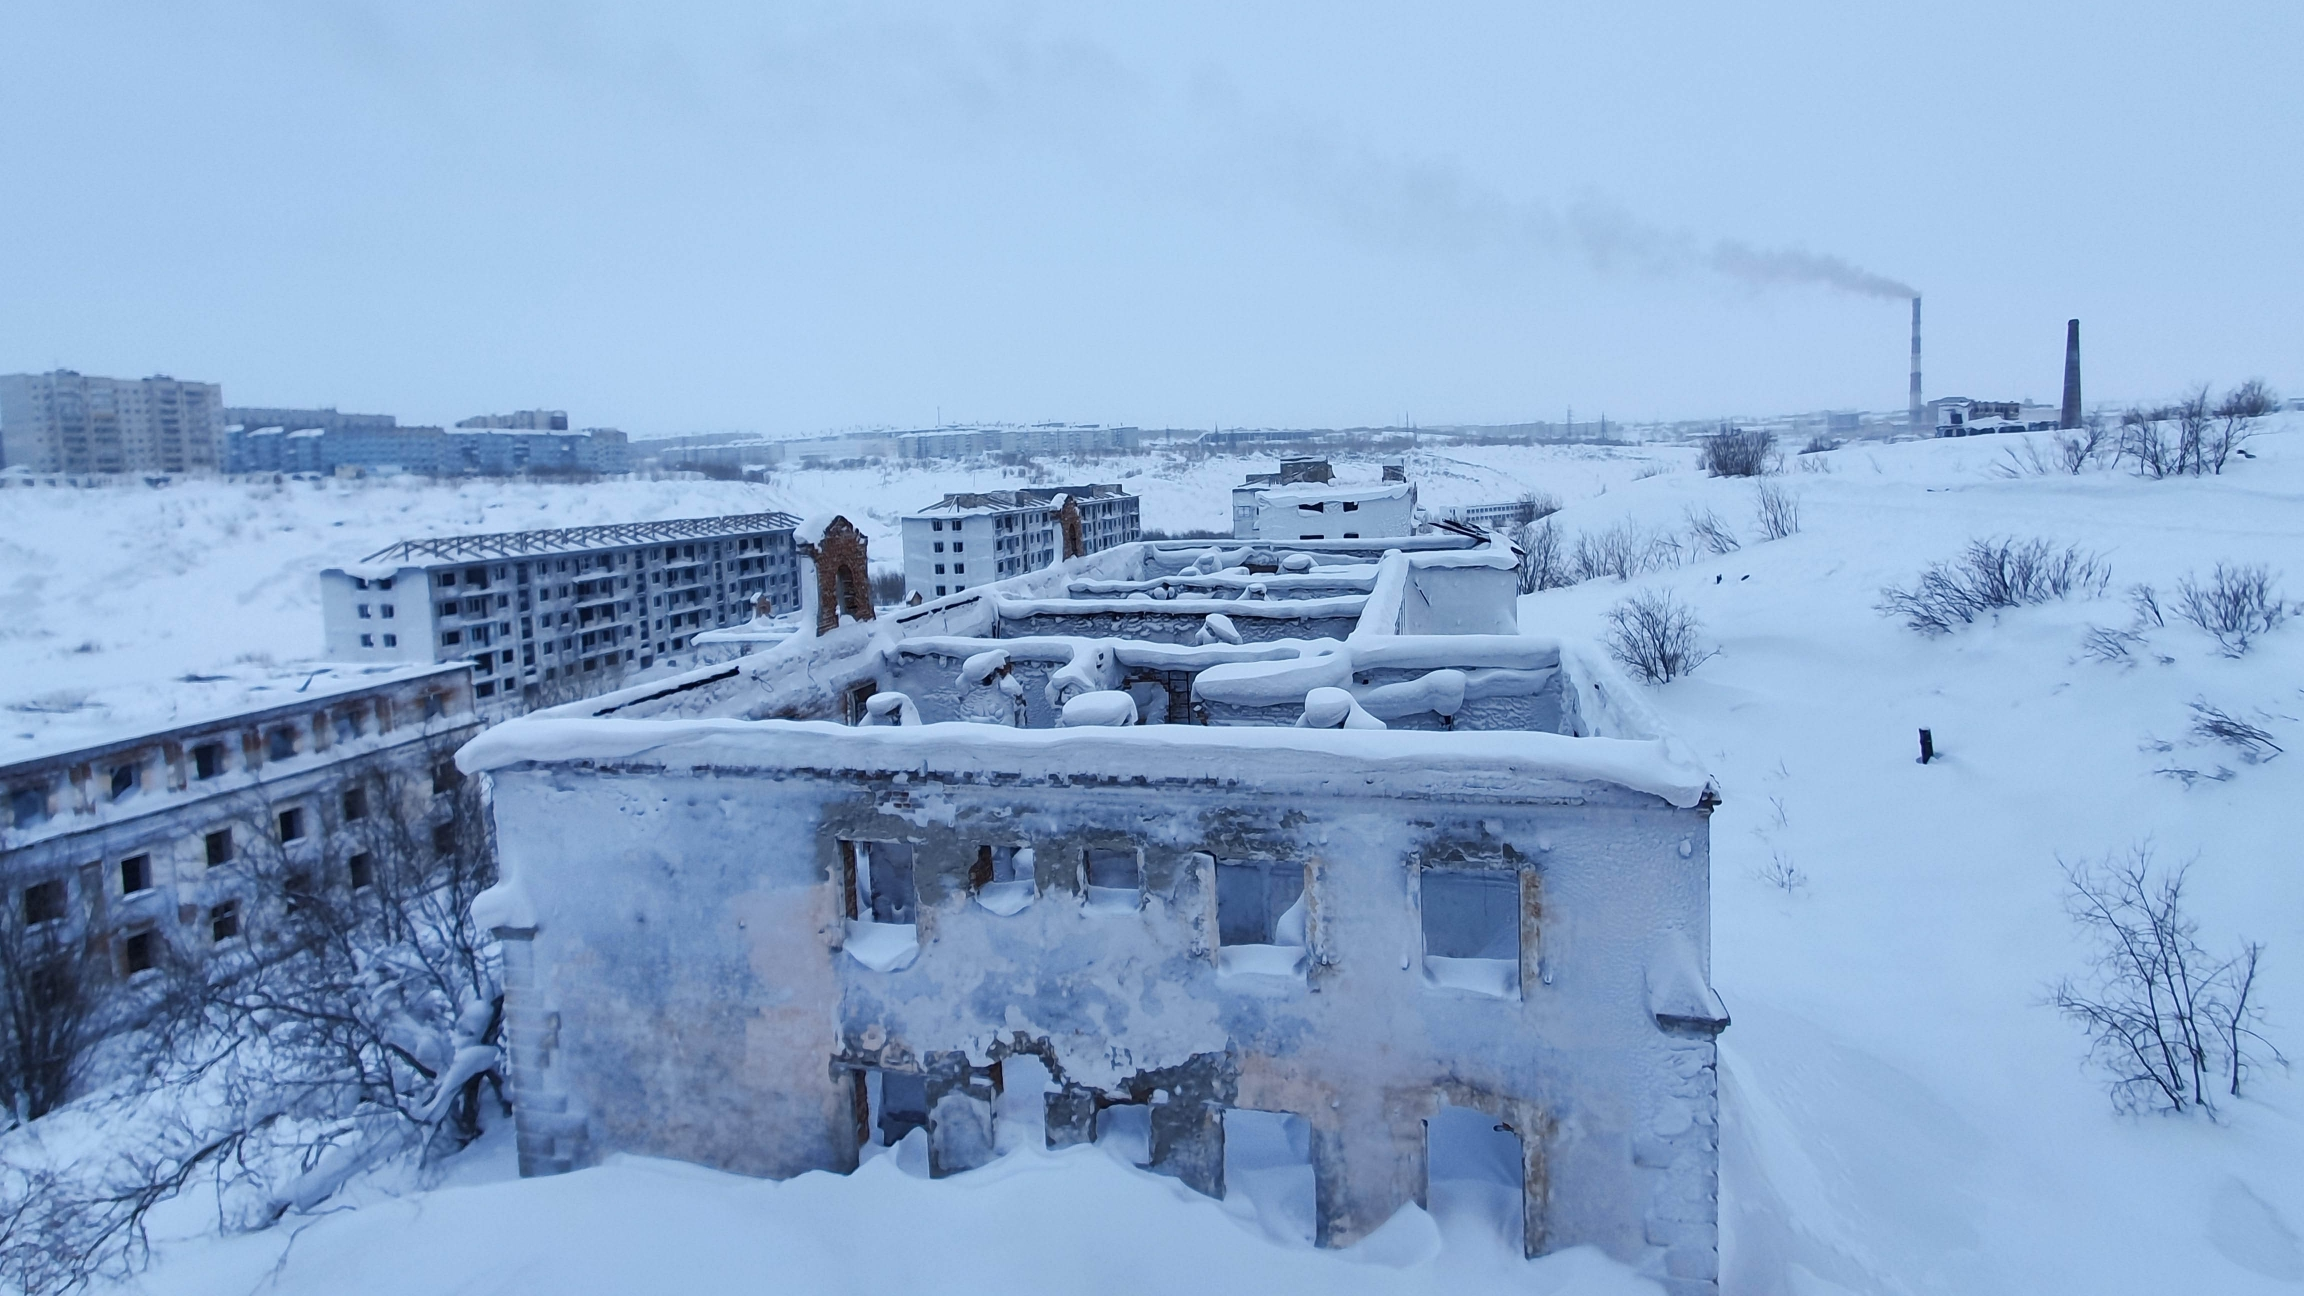 Abandoned snow-covered buildings